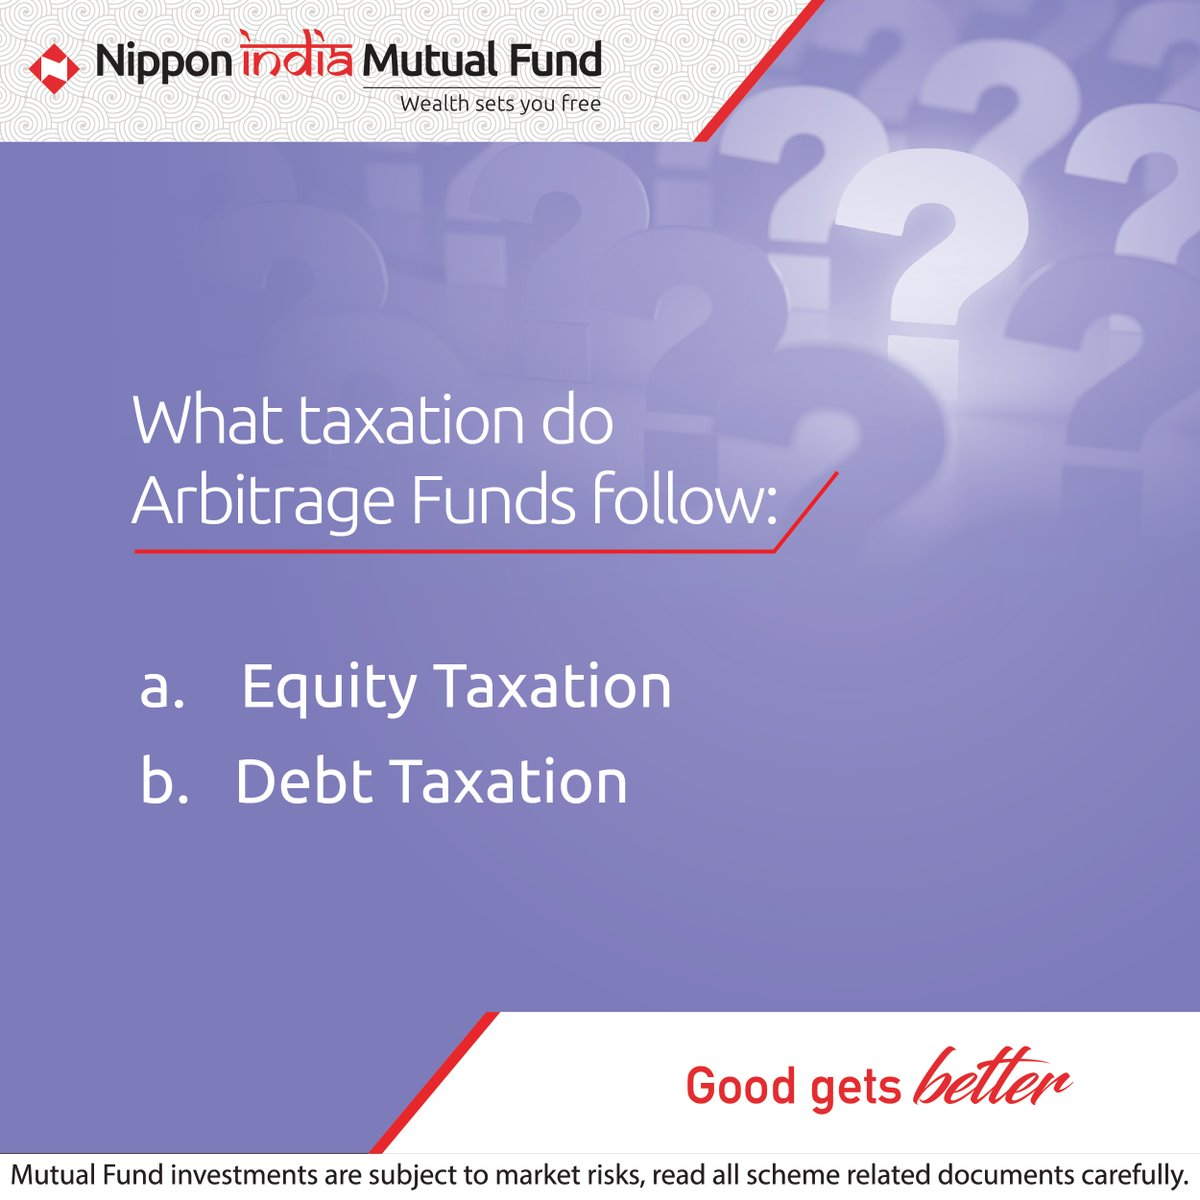 #TheNipponQuiz is here! Comment below the correct answer and tag @nipponindiamf with 3 friends to win special prizes! The last day to submit your entries is May 27, 2021  #Contest #ContestAlert #NipponIndiaMutualFund #MutualFund #Investment #Savings #FinancialGoals https://t.co/IQkrXDLKcE